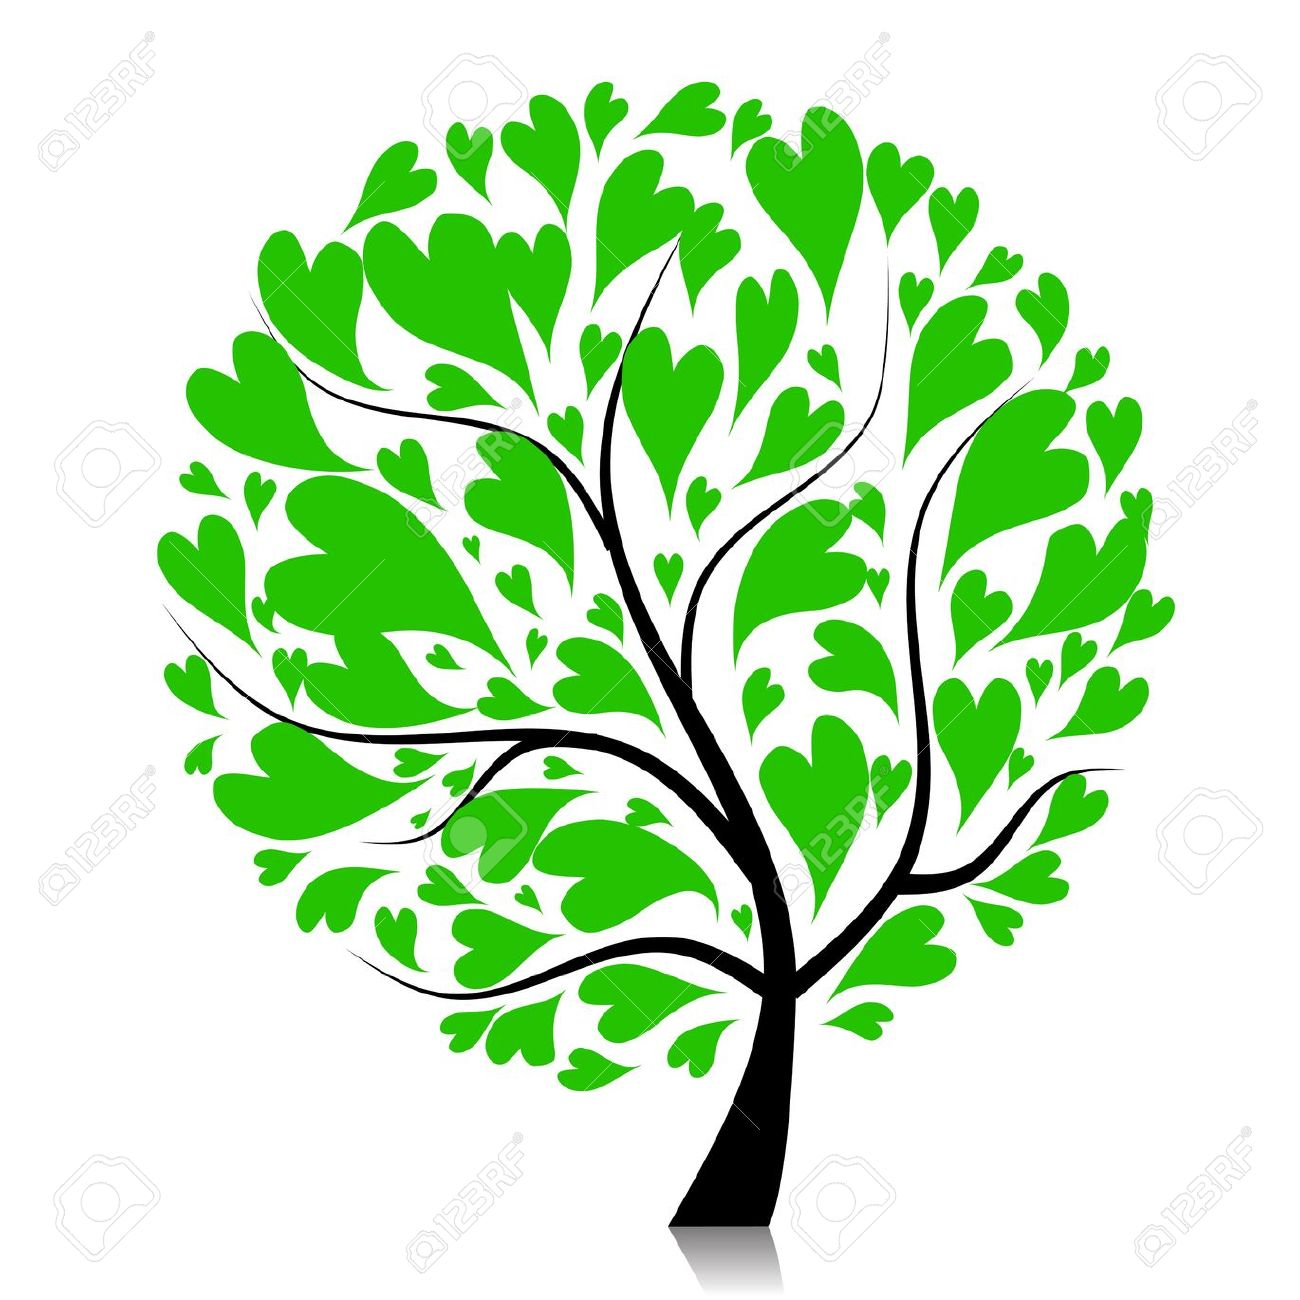 Tree hearts clipart picture library library Heart tree clipart vector - ClipartFox picture library library